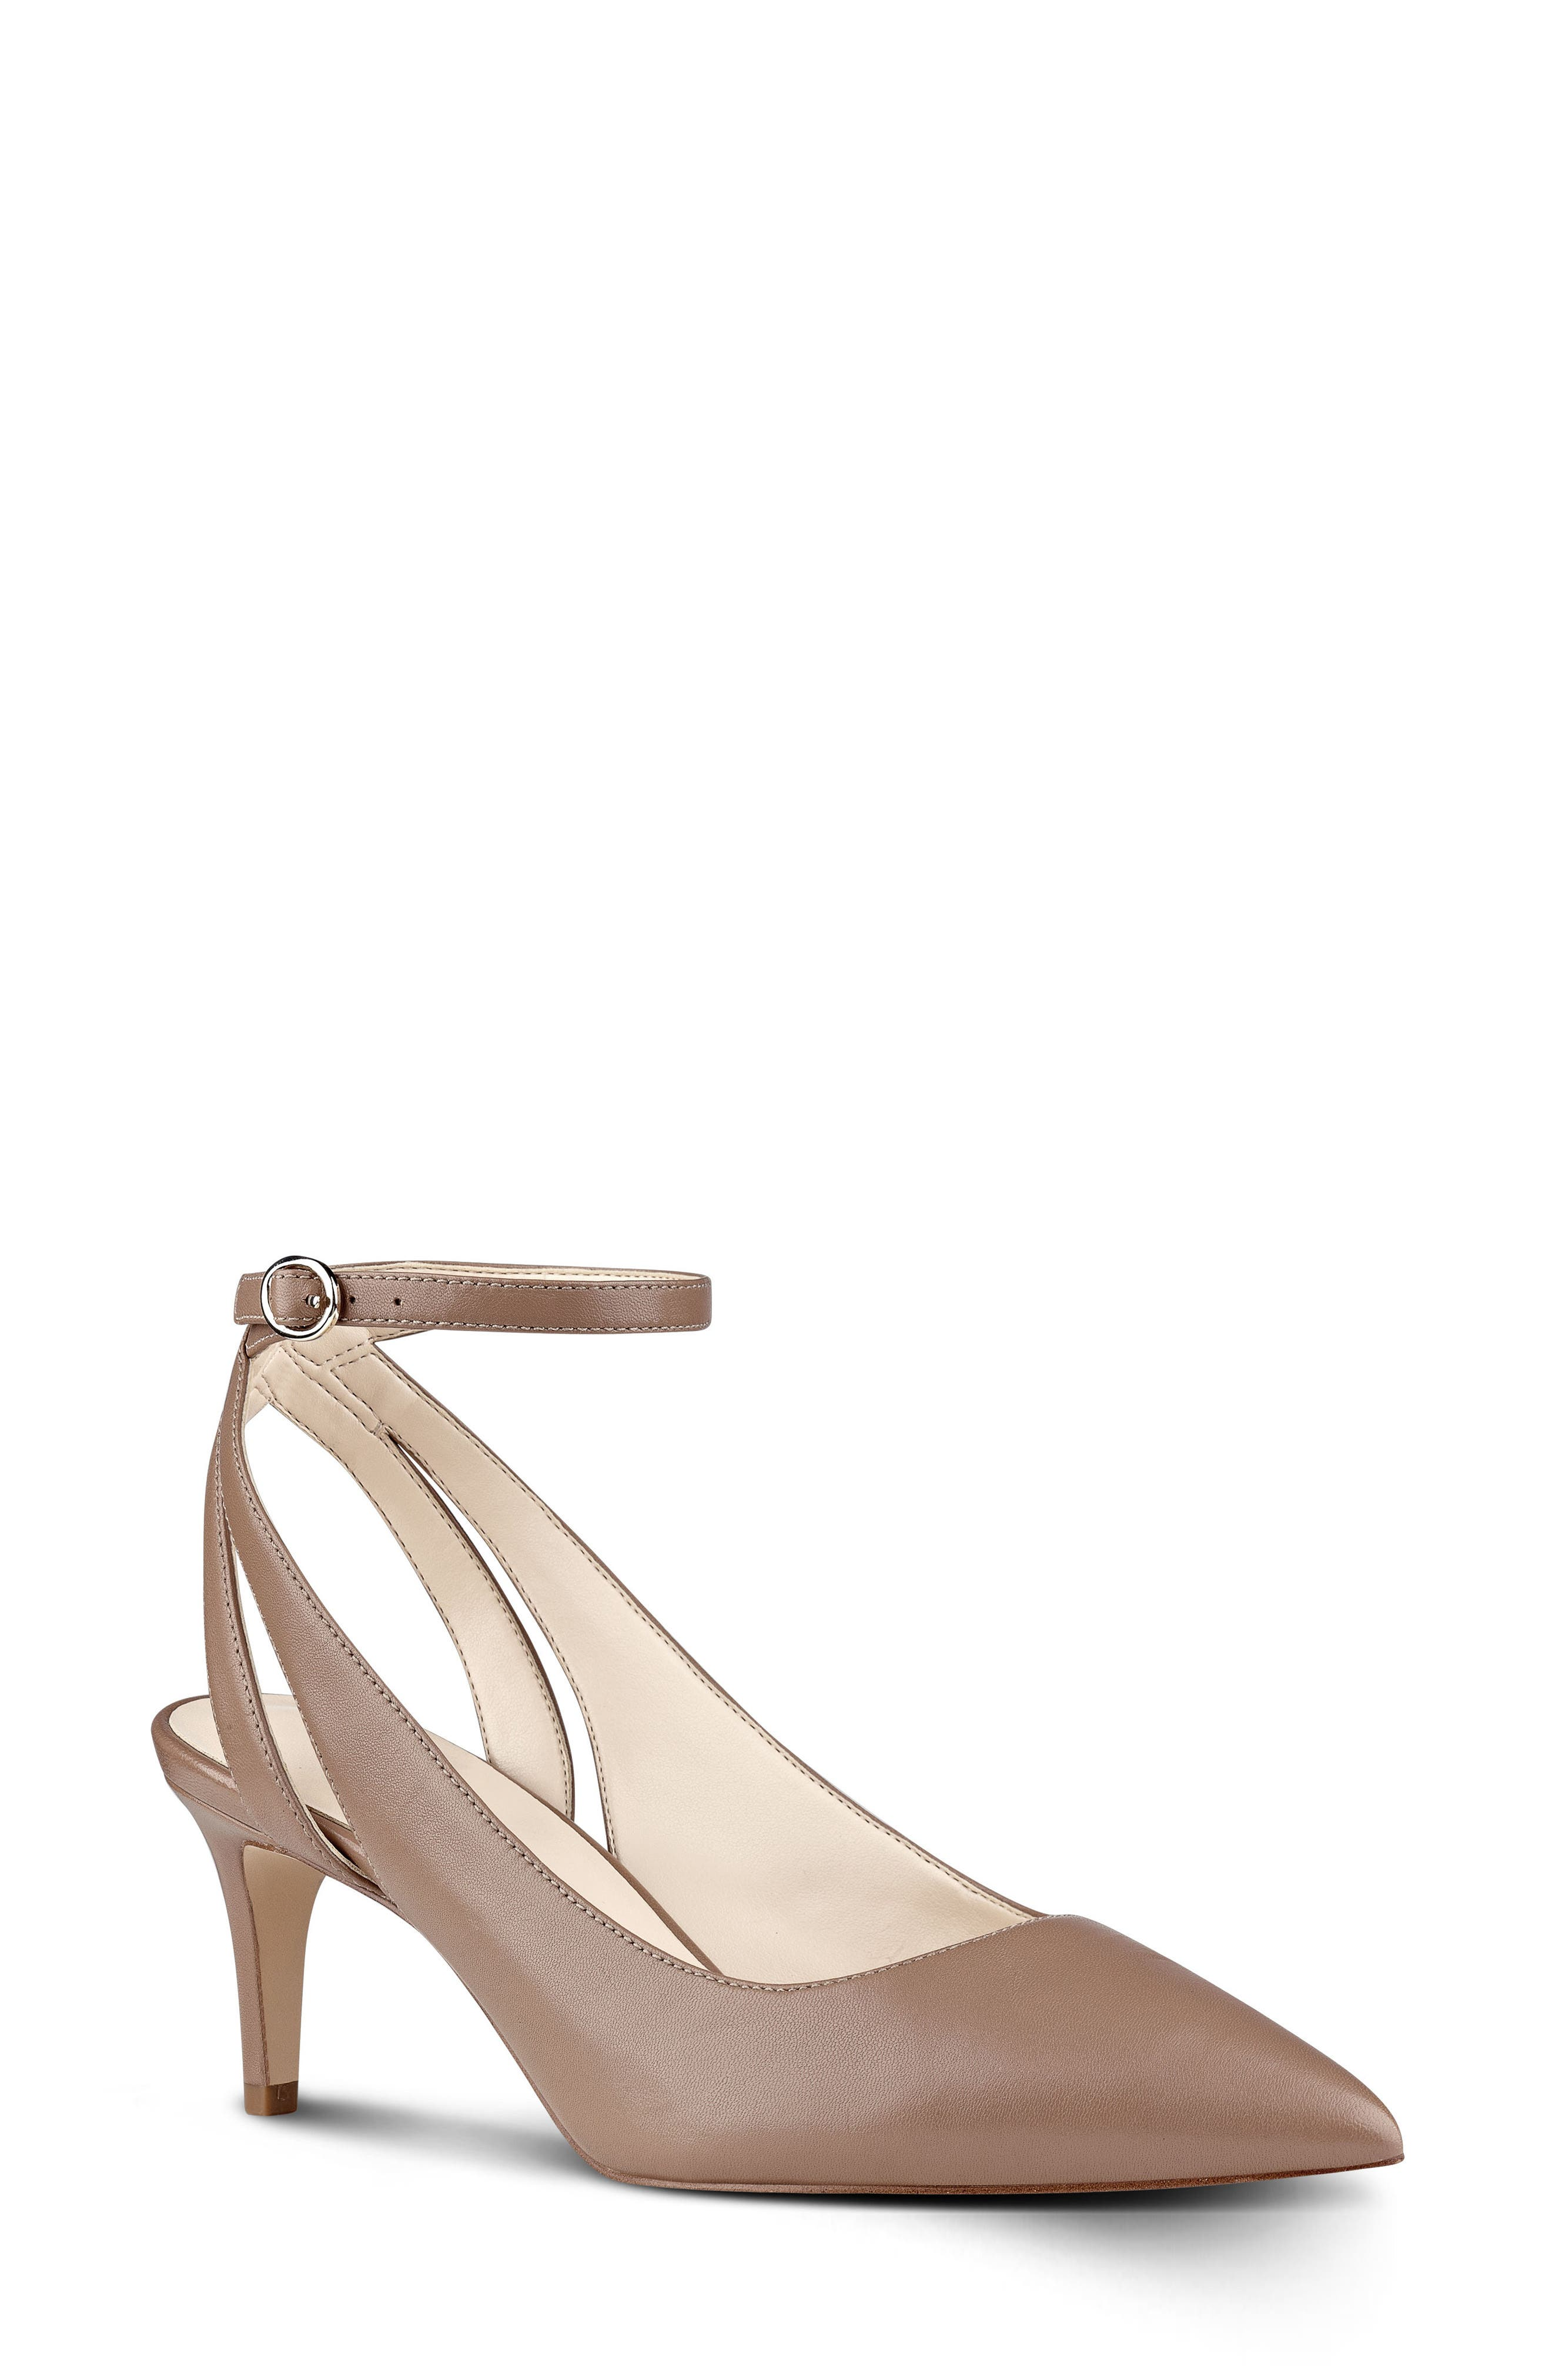 Shawn Ankle Strap Pump,                             Main thumbnail 1, color,                             Natural Leather